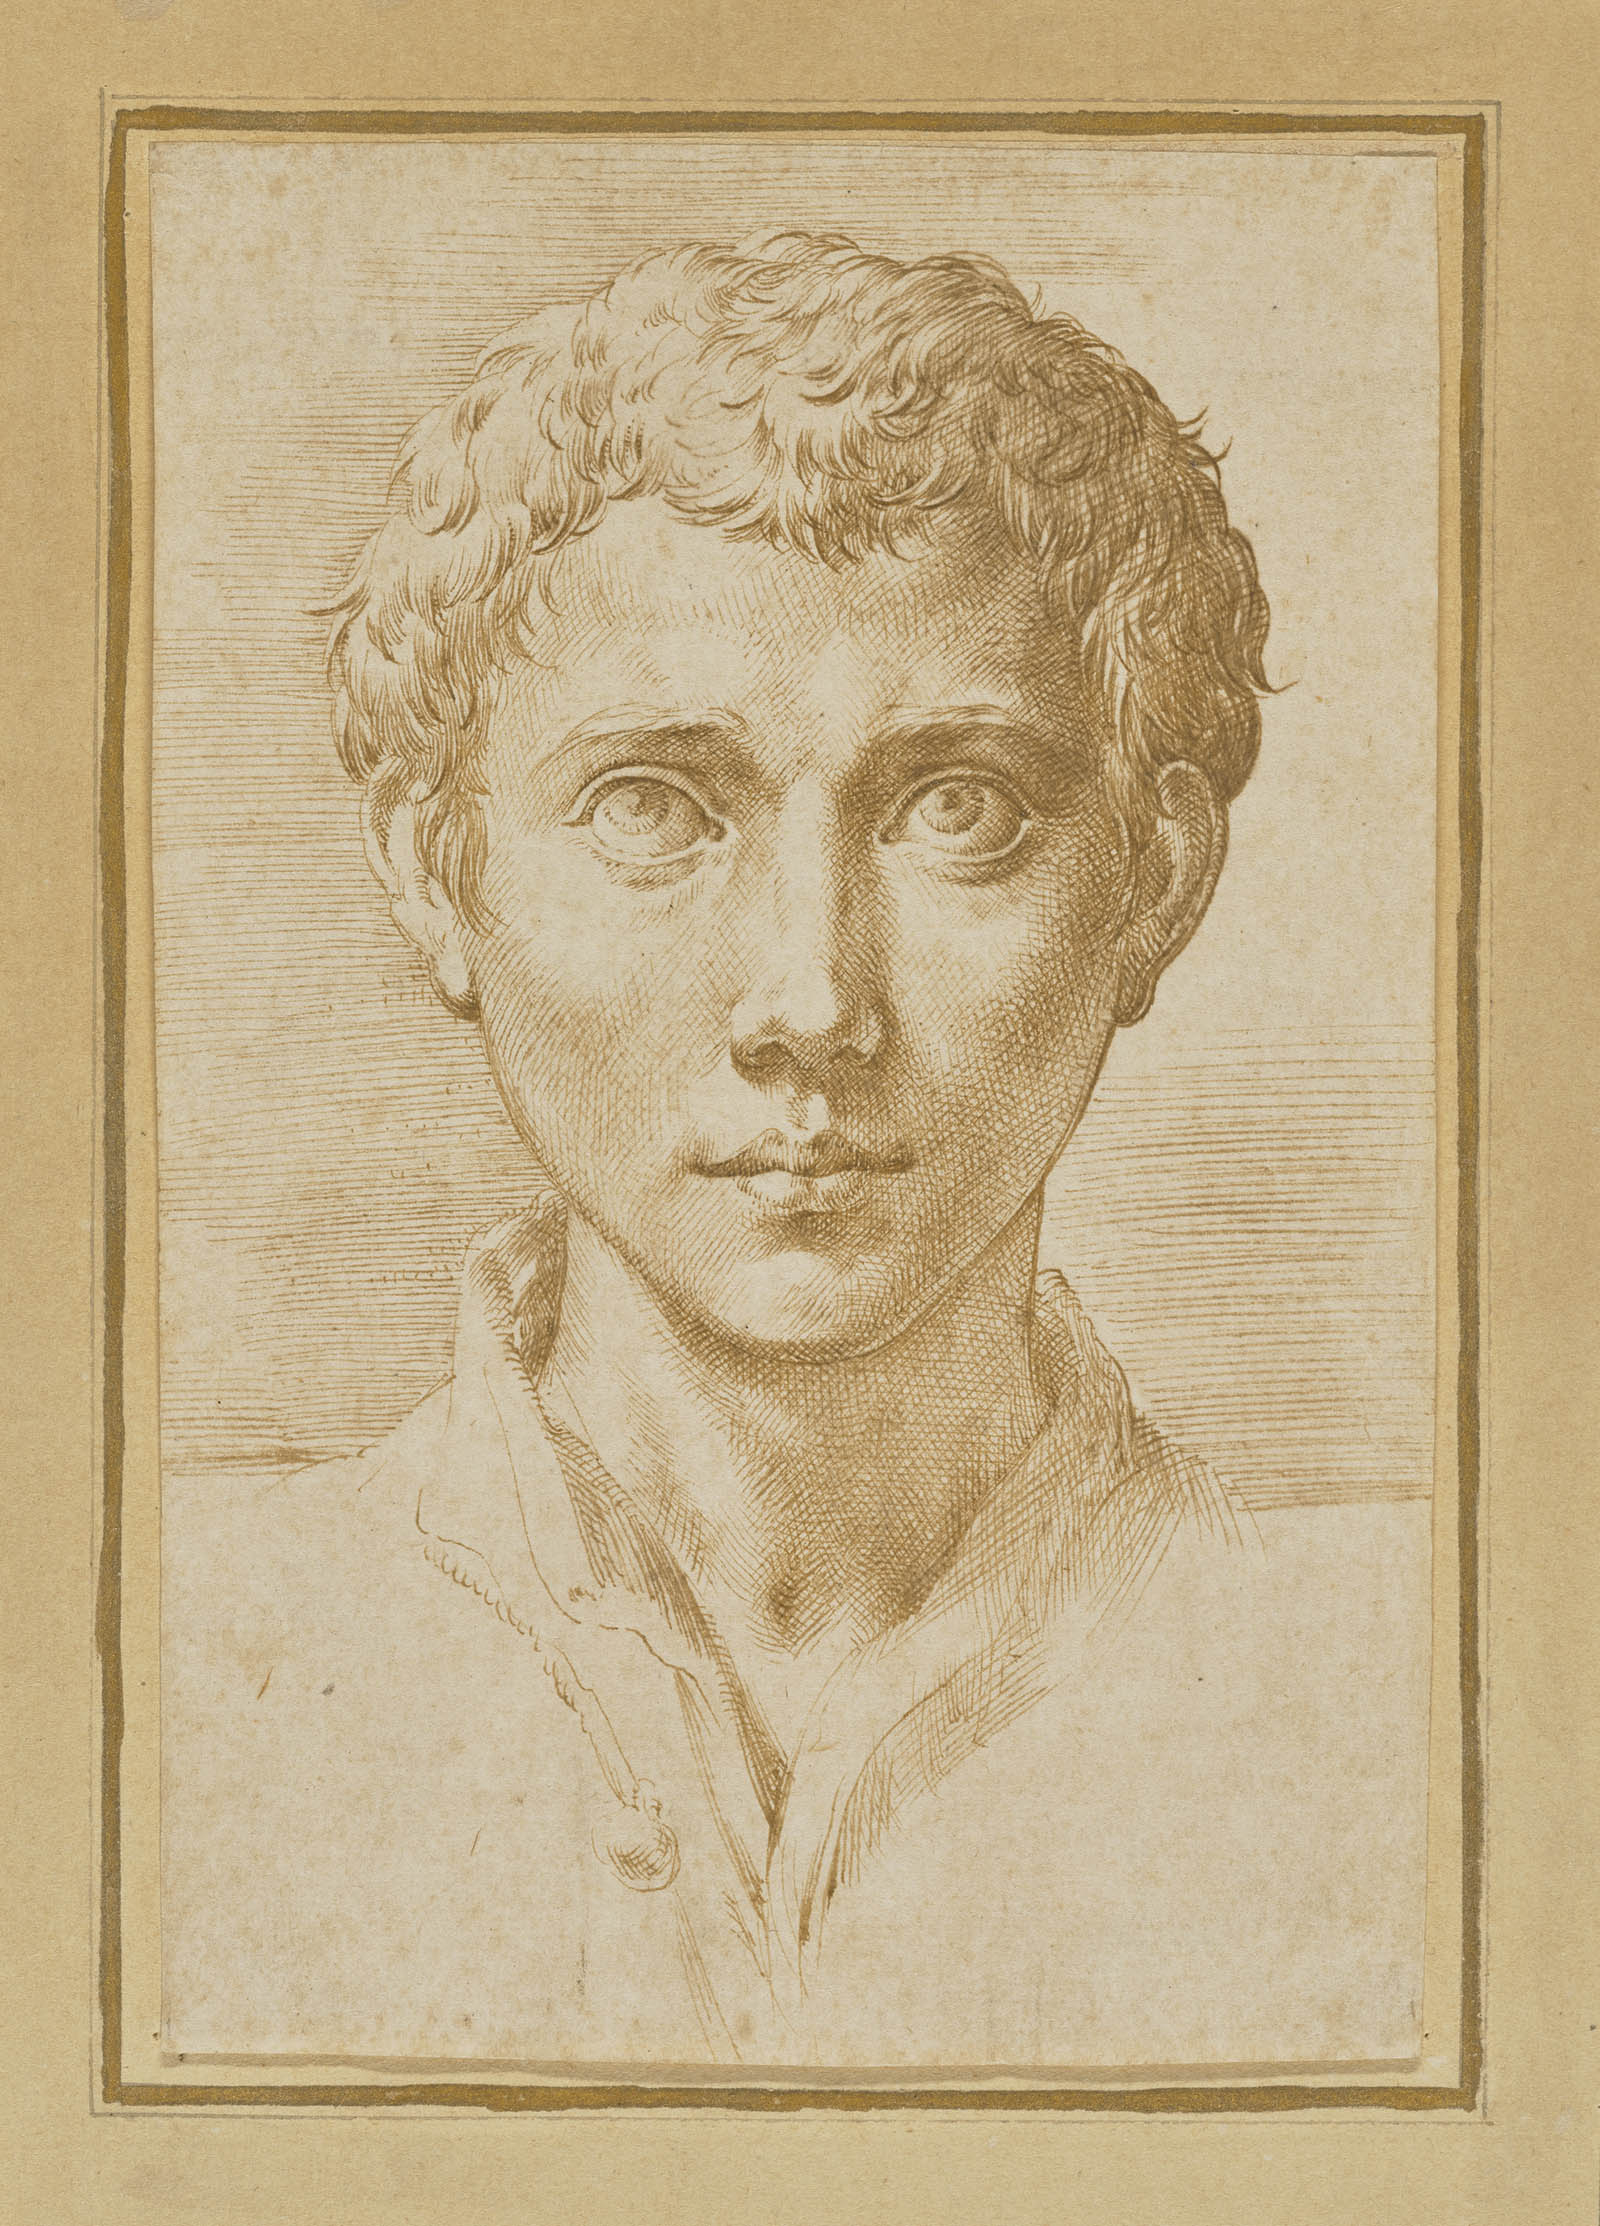 Sketch of a young man with short wavy hair and an open collared shirt